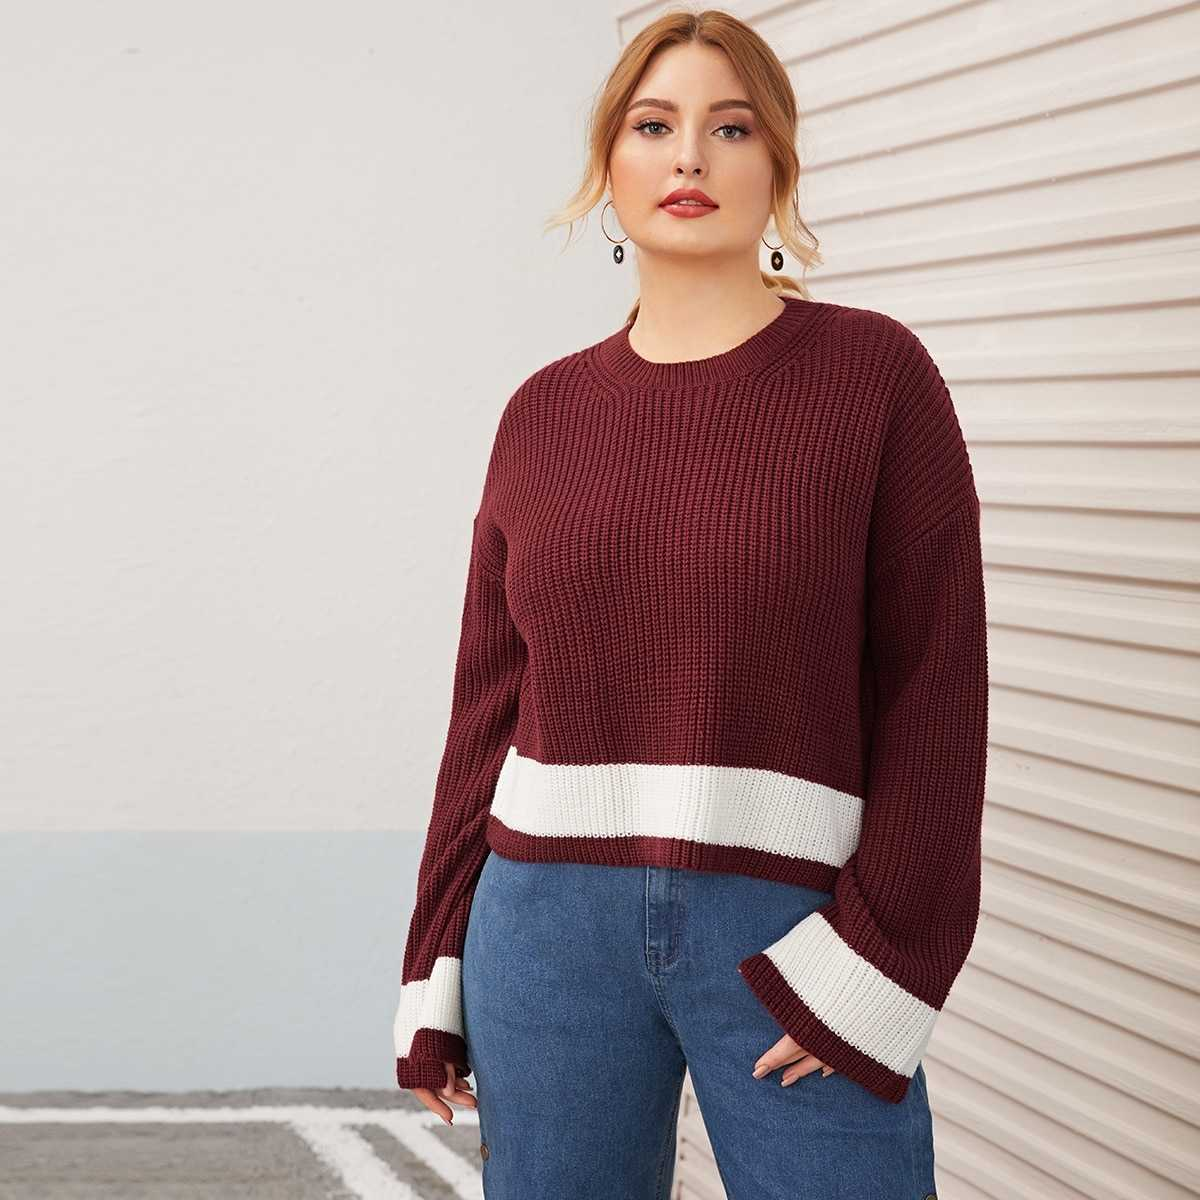 Plus Colorblock Rib Knit Sweater in Red by ROMWE on GOOFASH